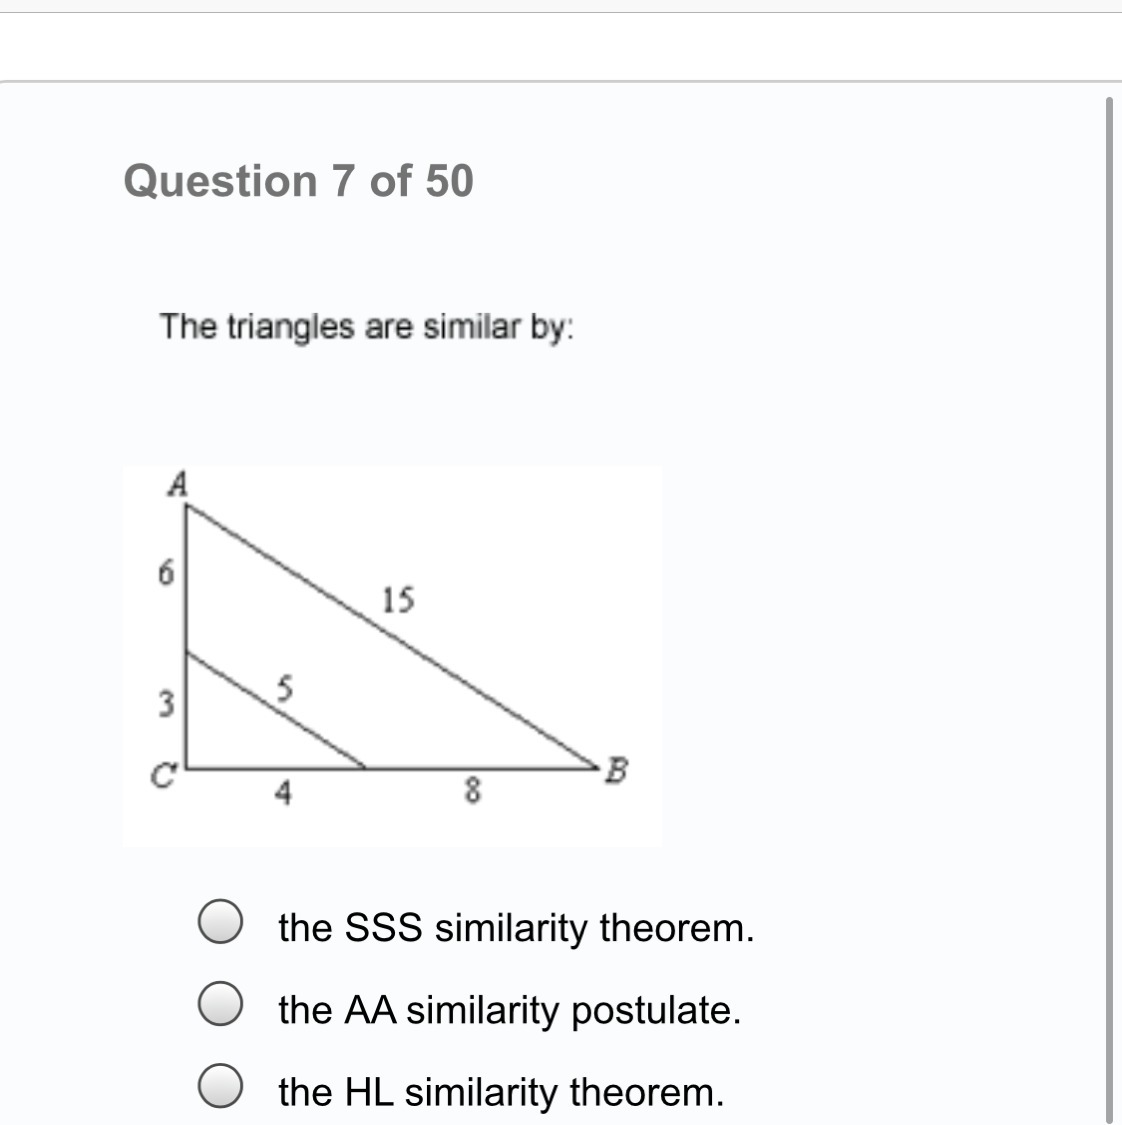 The triangles are similar by: A  The SSS similarity theorem